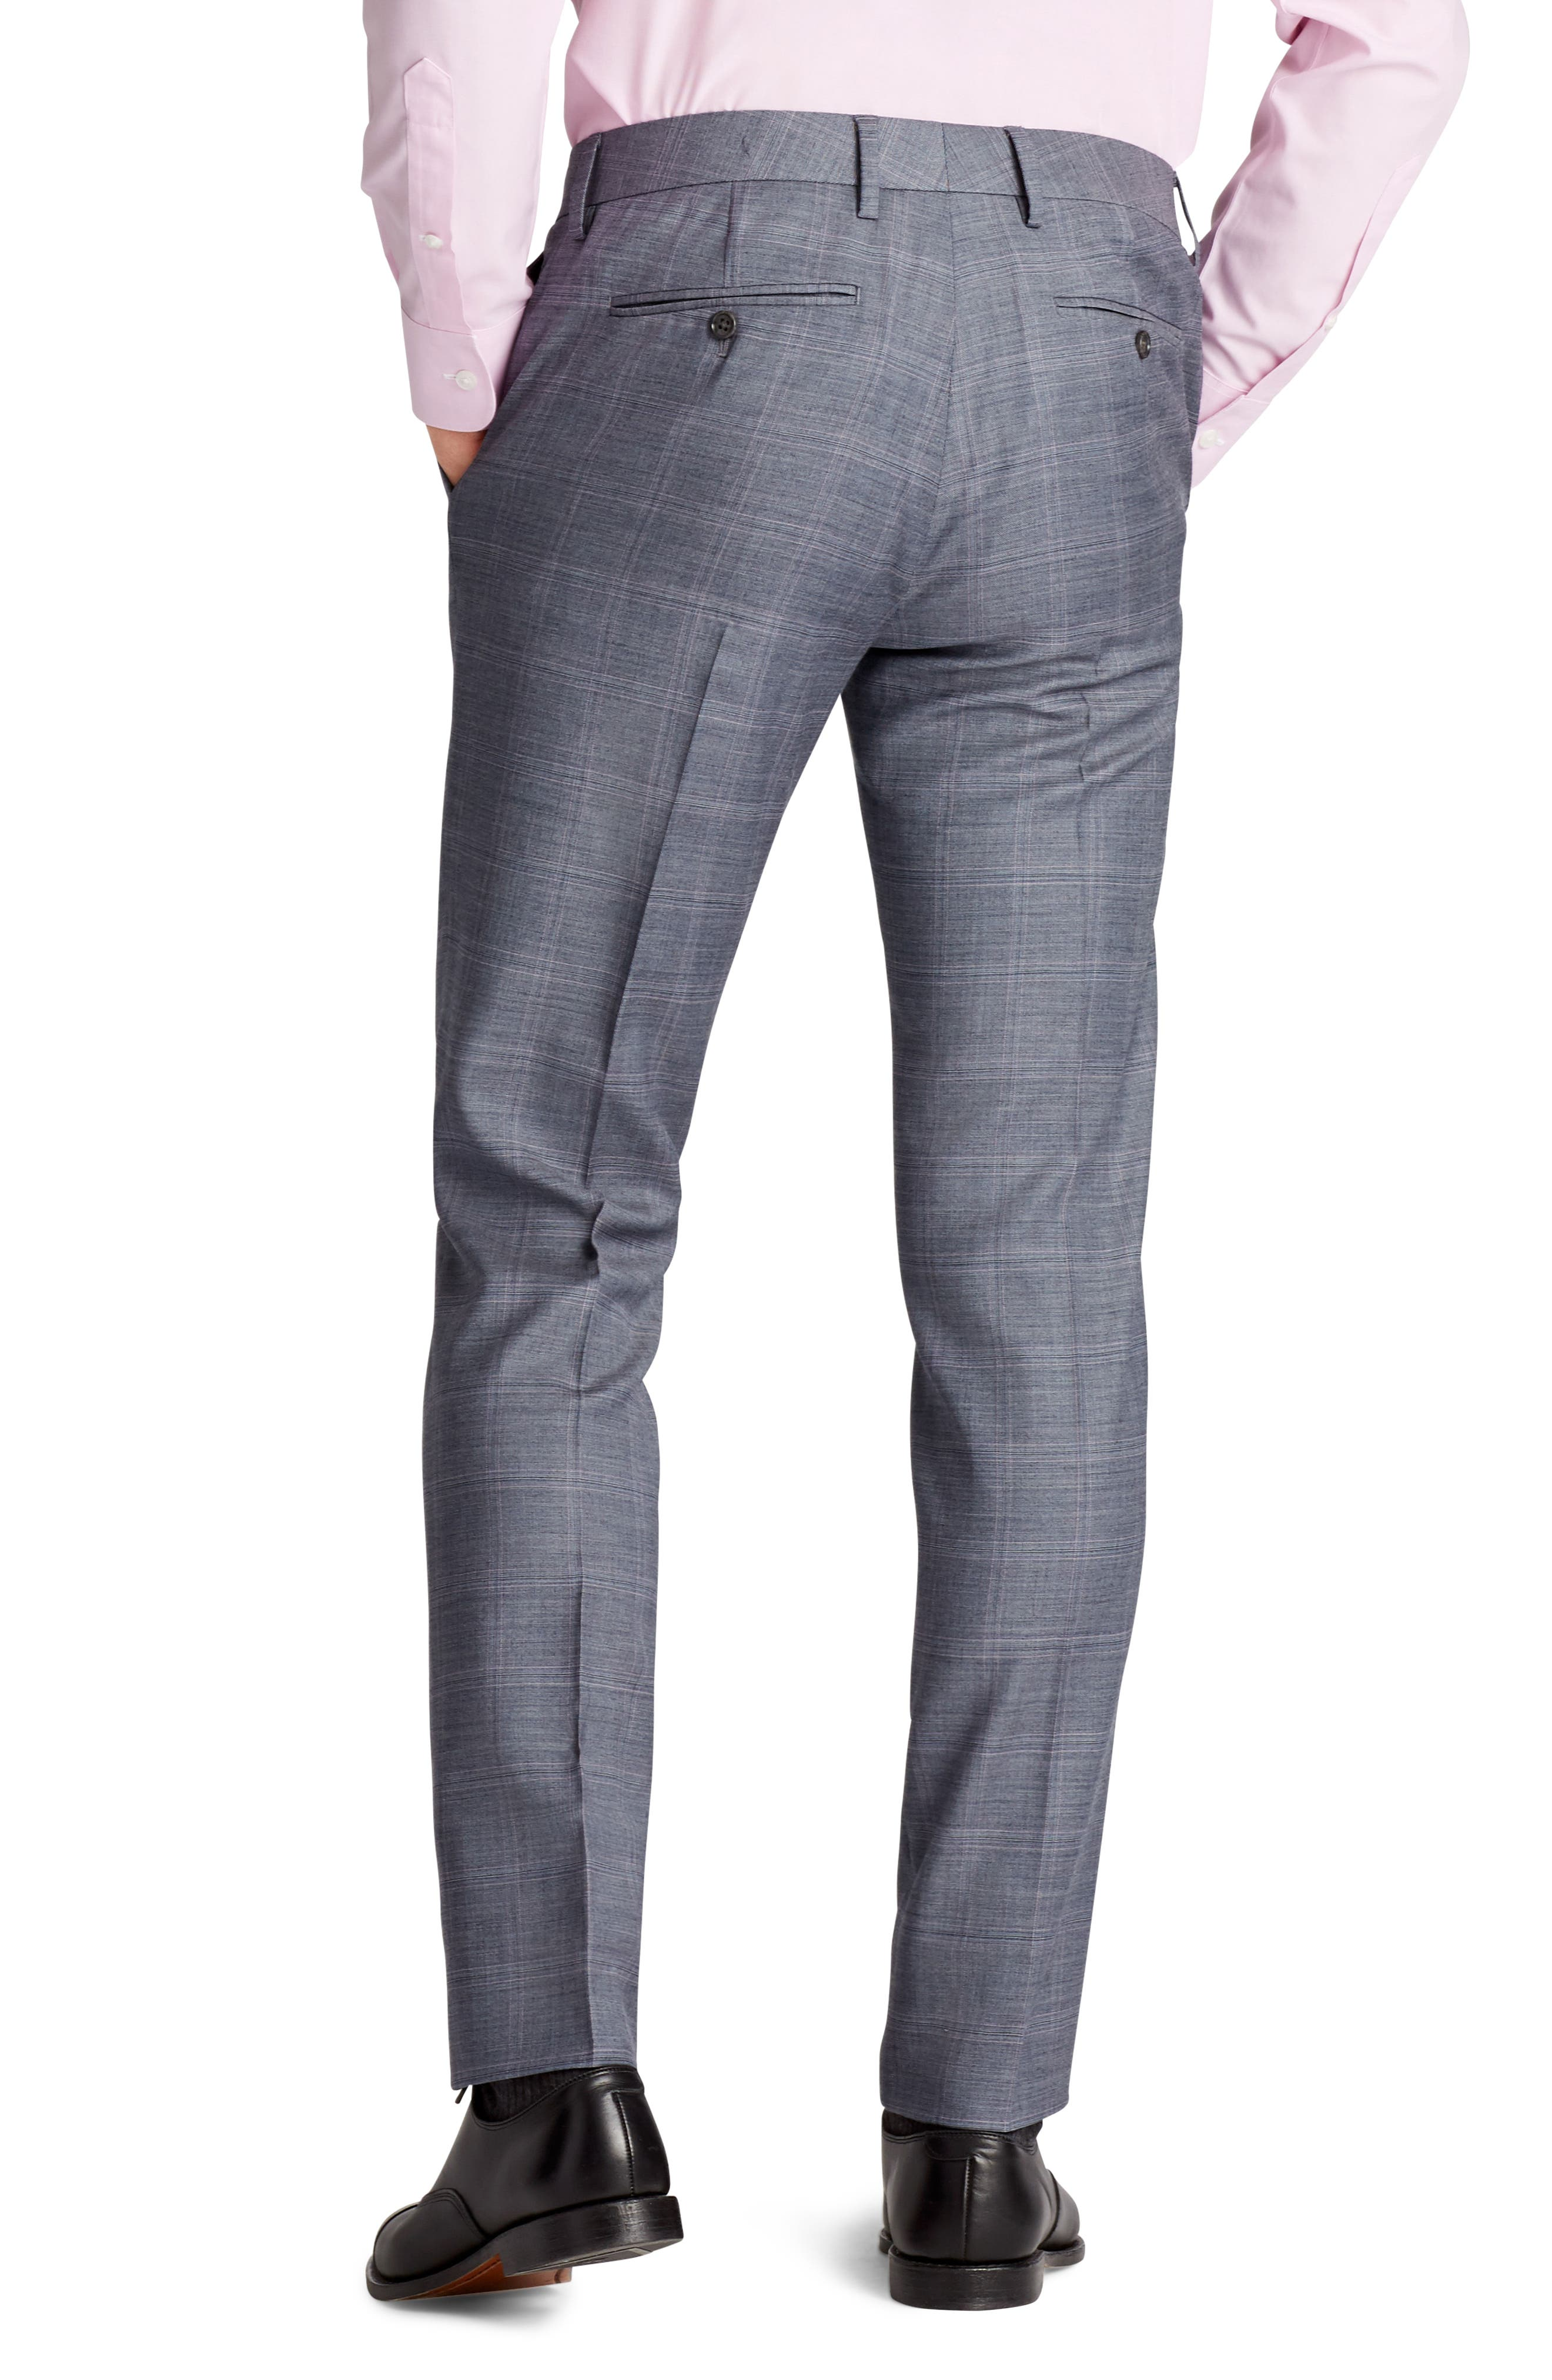 Jetsetter Flat Front Stretch Plaid Wool Trousers,                             Alternate thumbnail 2, color,                             020